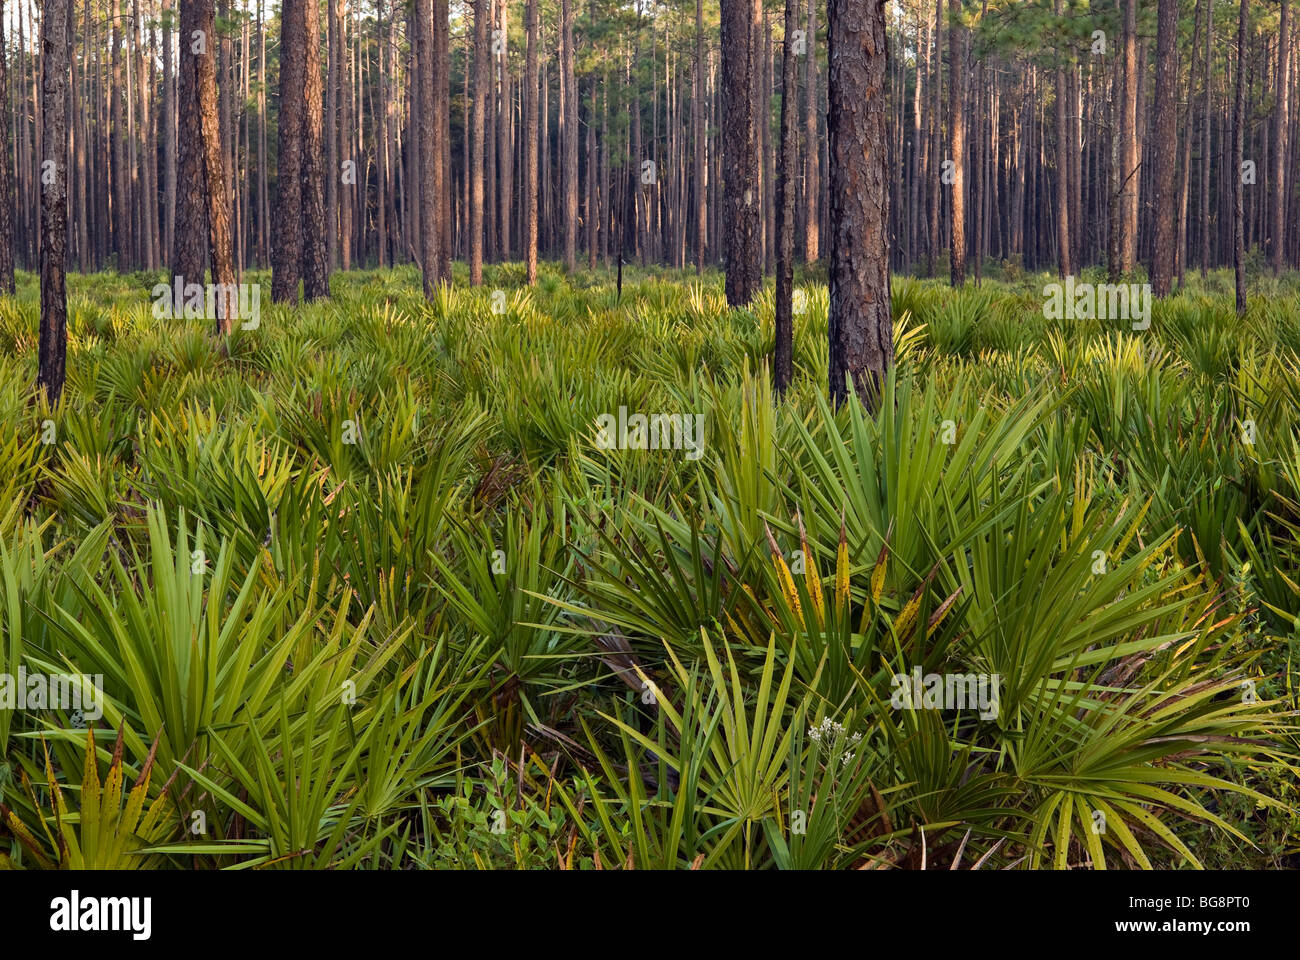 Forest with pine trees (pinus palustris) and saw palmetto plants (serenoa repens), Okefenokee National Wildlife - Stock Image